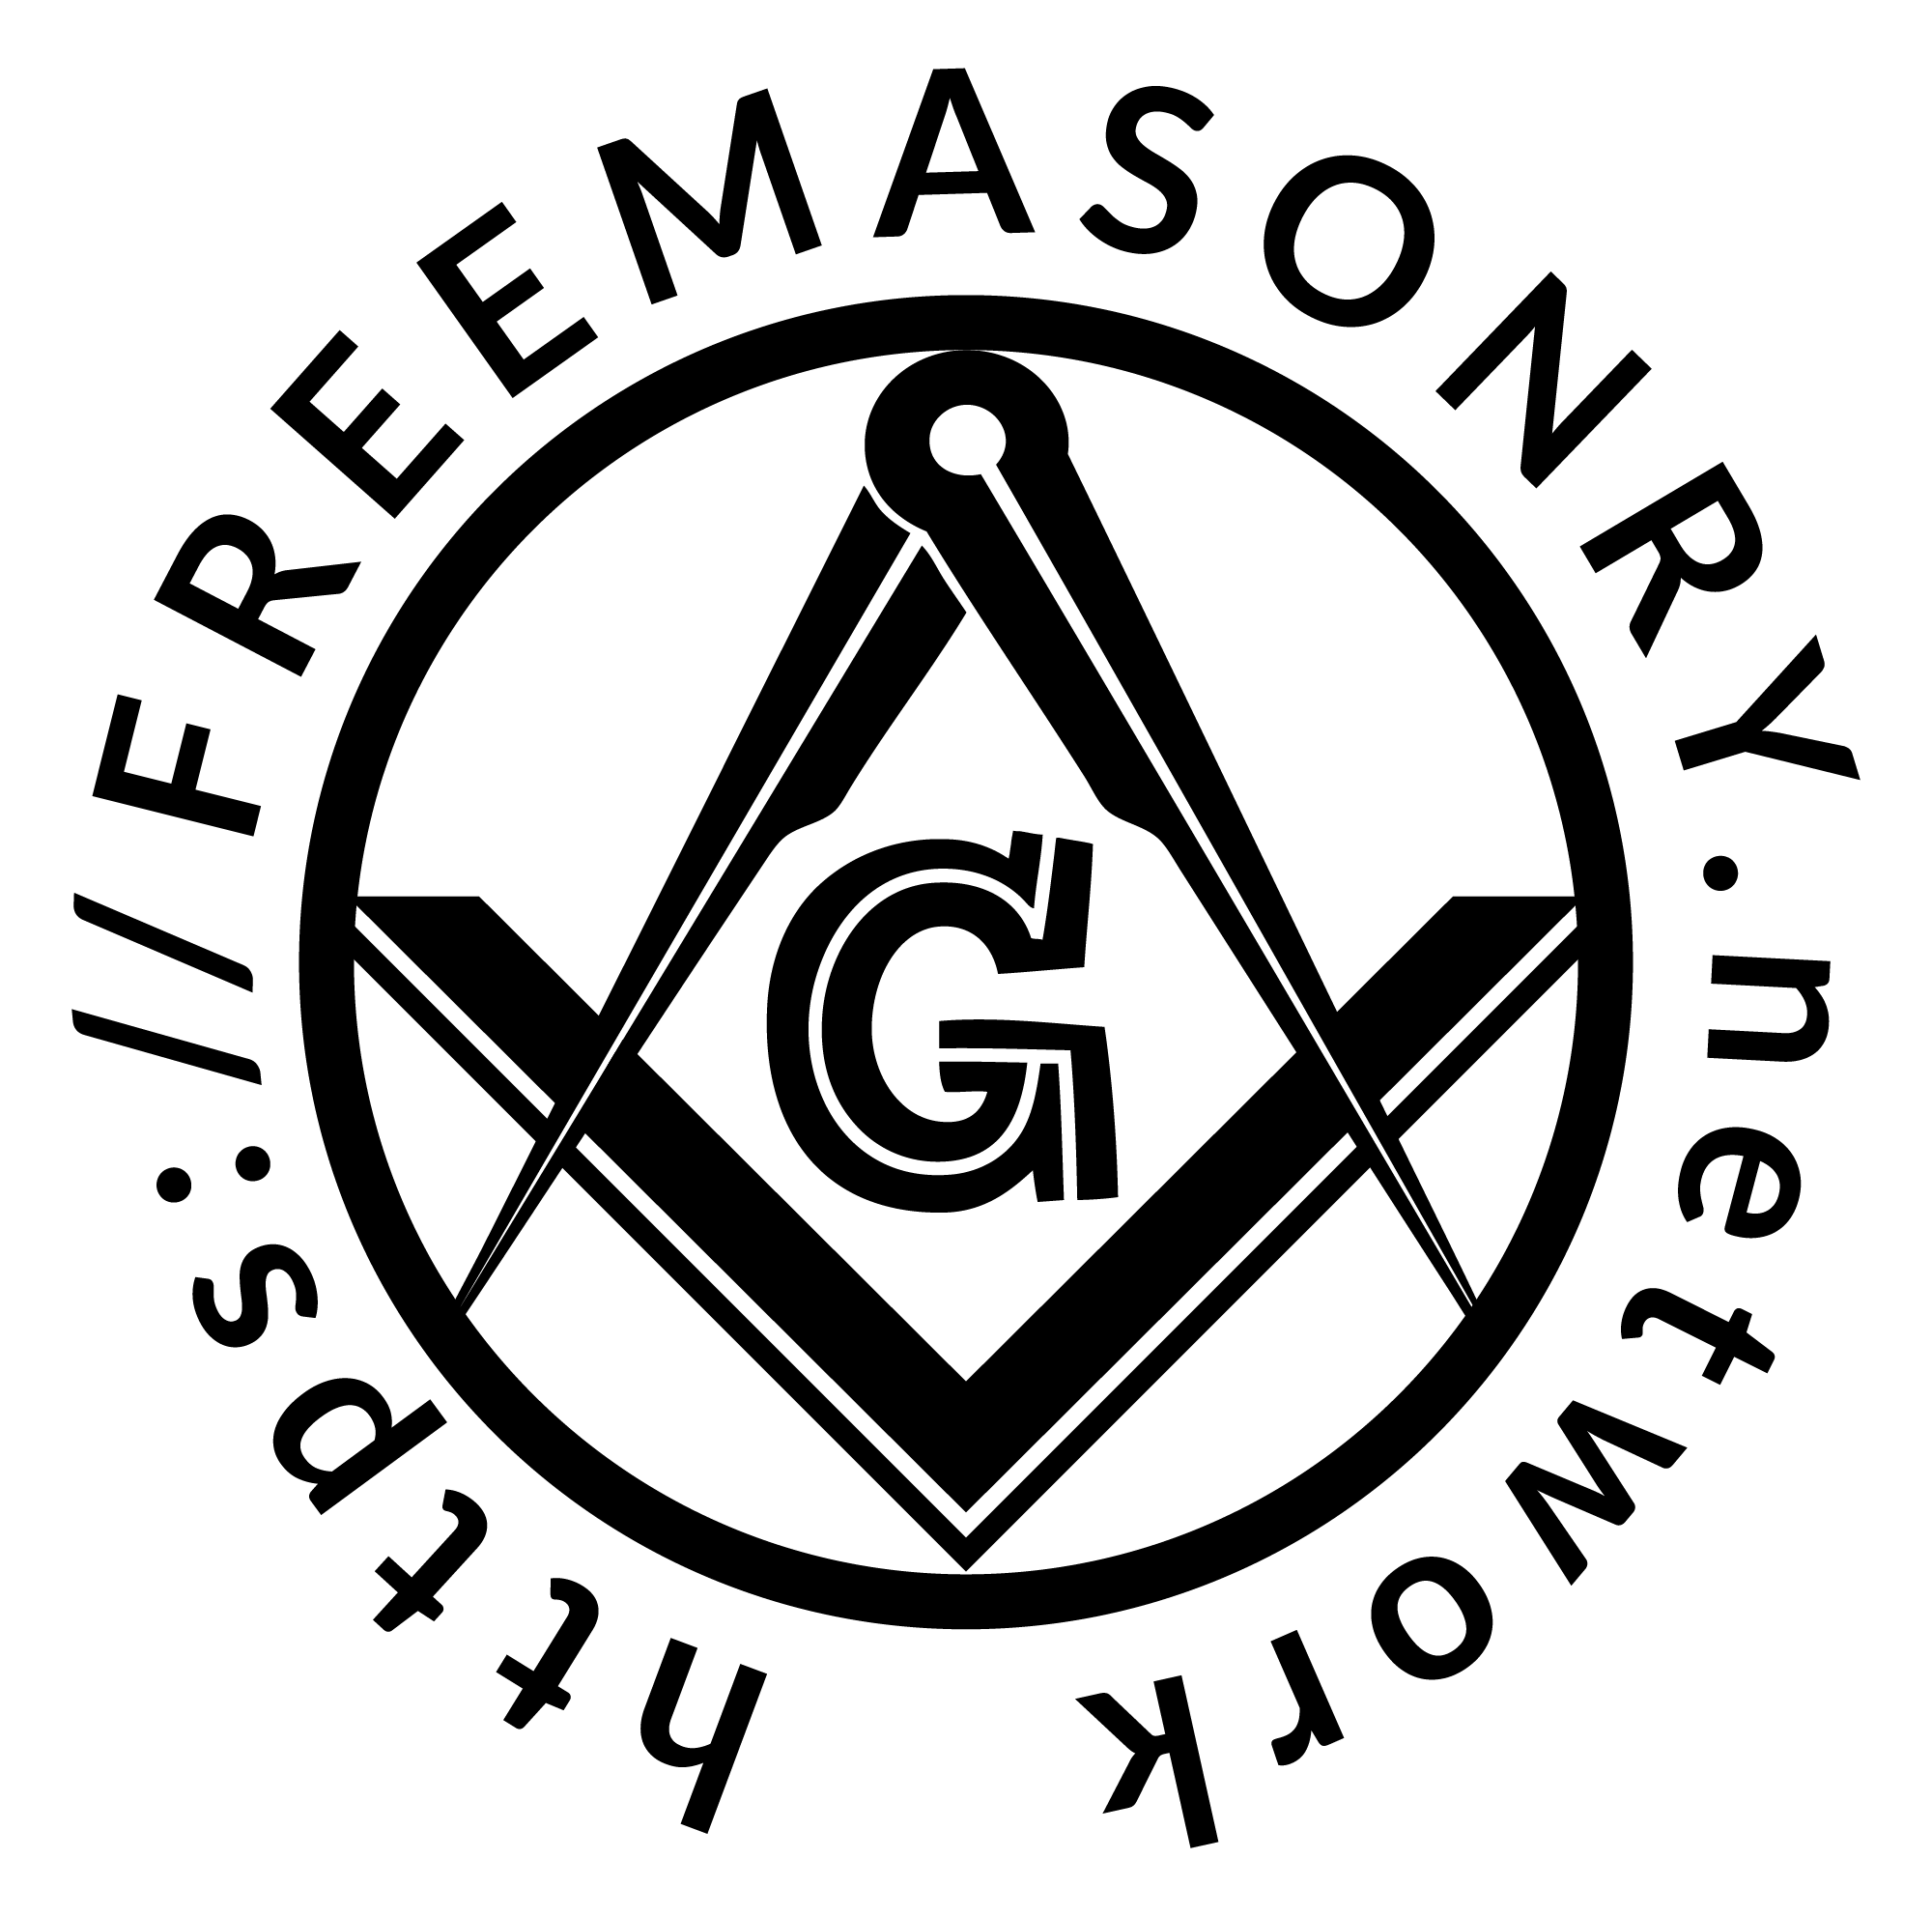 FREEMASONRY AND SOCIAL MEDIA